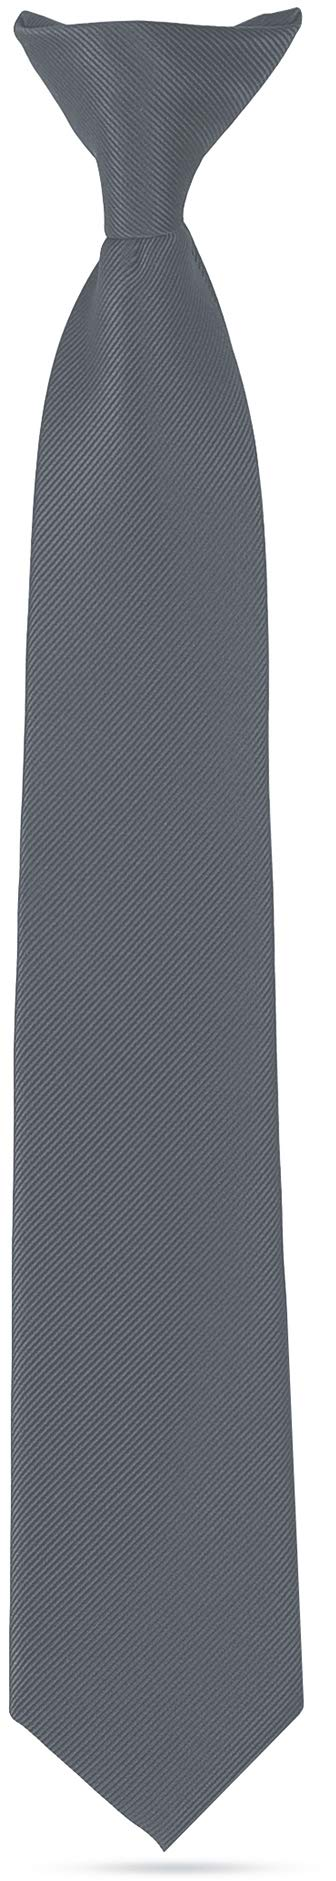 Ties For Boys - Clip On Tie Woven Boys Ties: Neckties For Kids Formal Wedding Graduation School Uniforms (Grey) by LUTHER PIKE SEATTLE